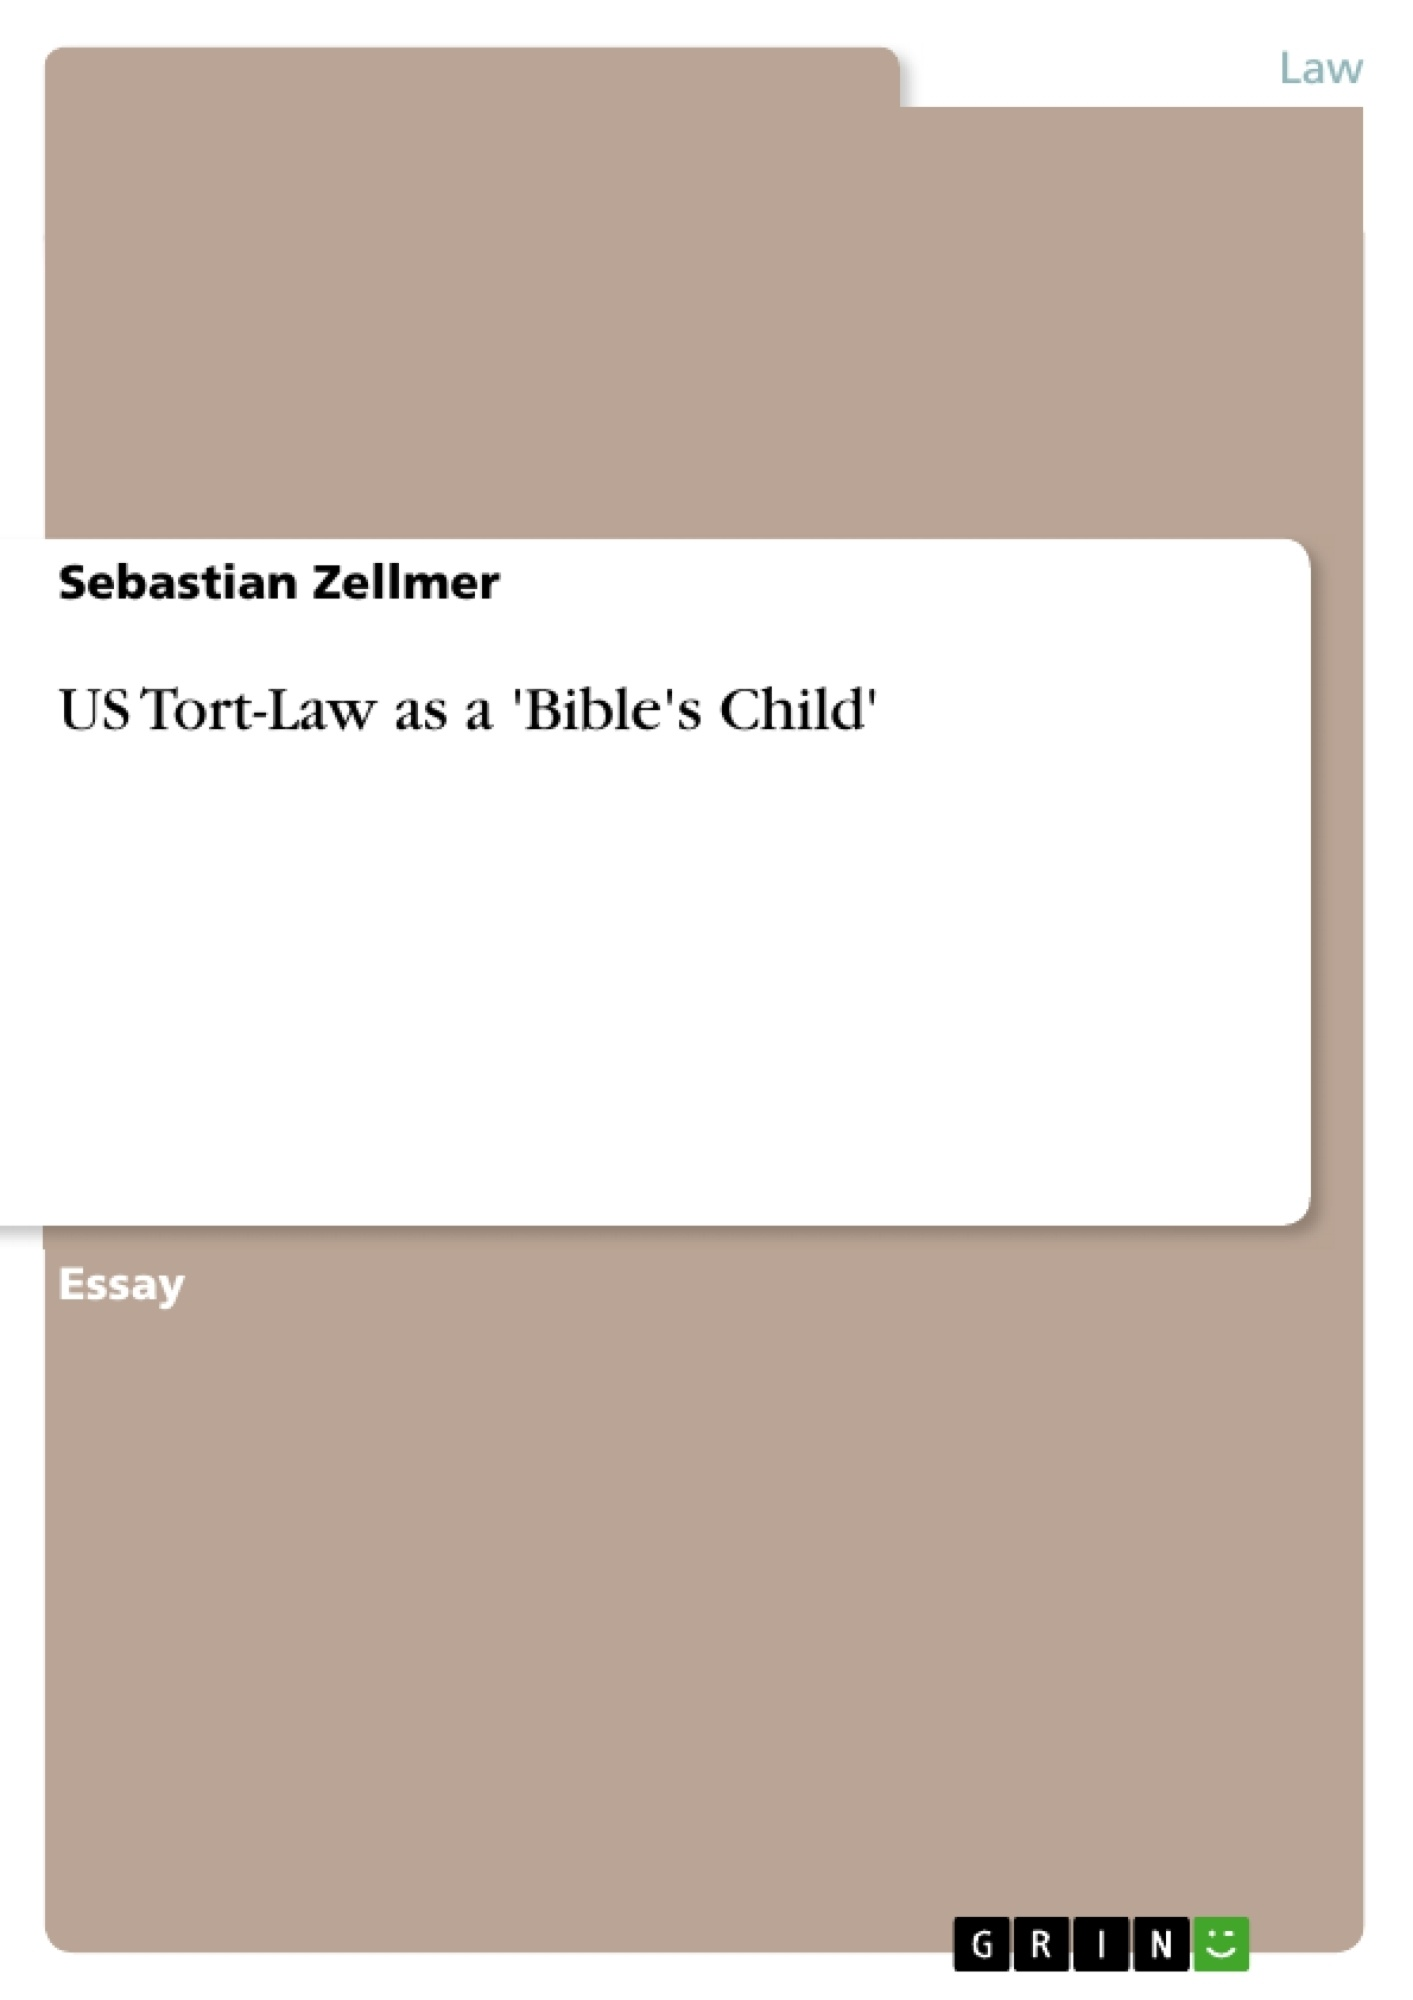 Title: US Tort-Law as a 'Bible's Child'